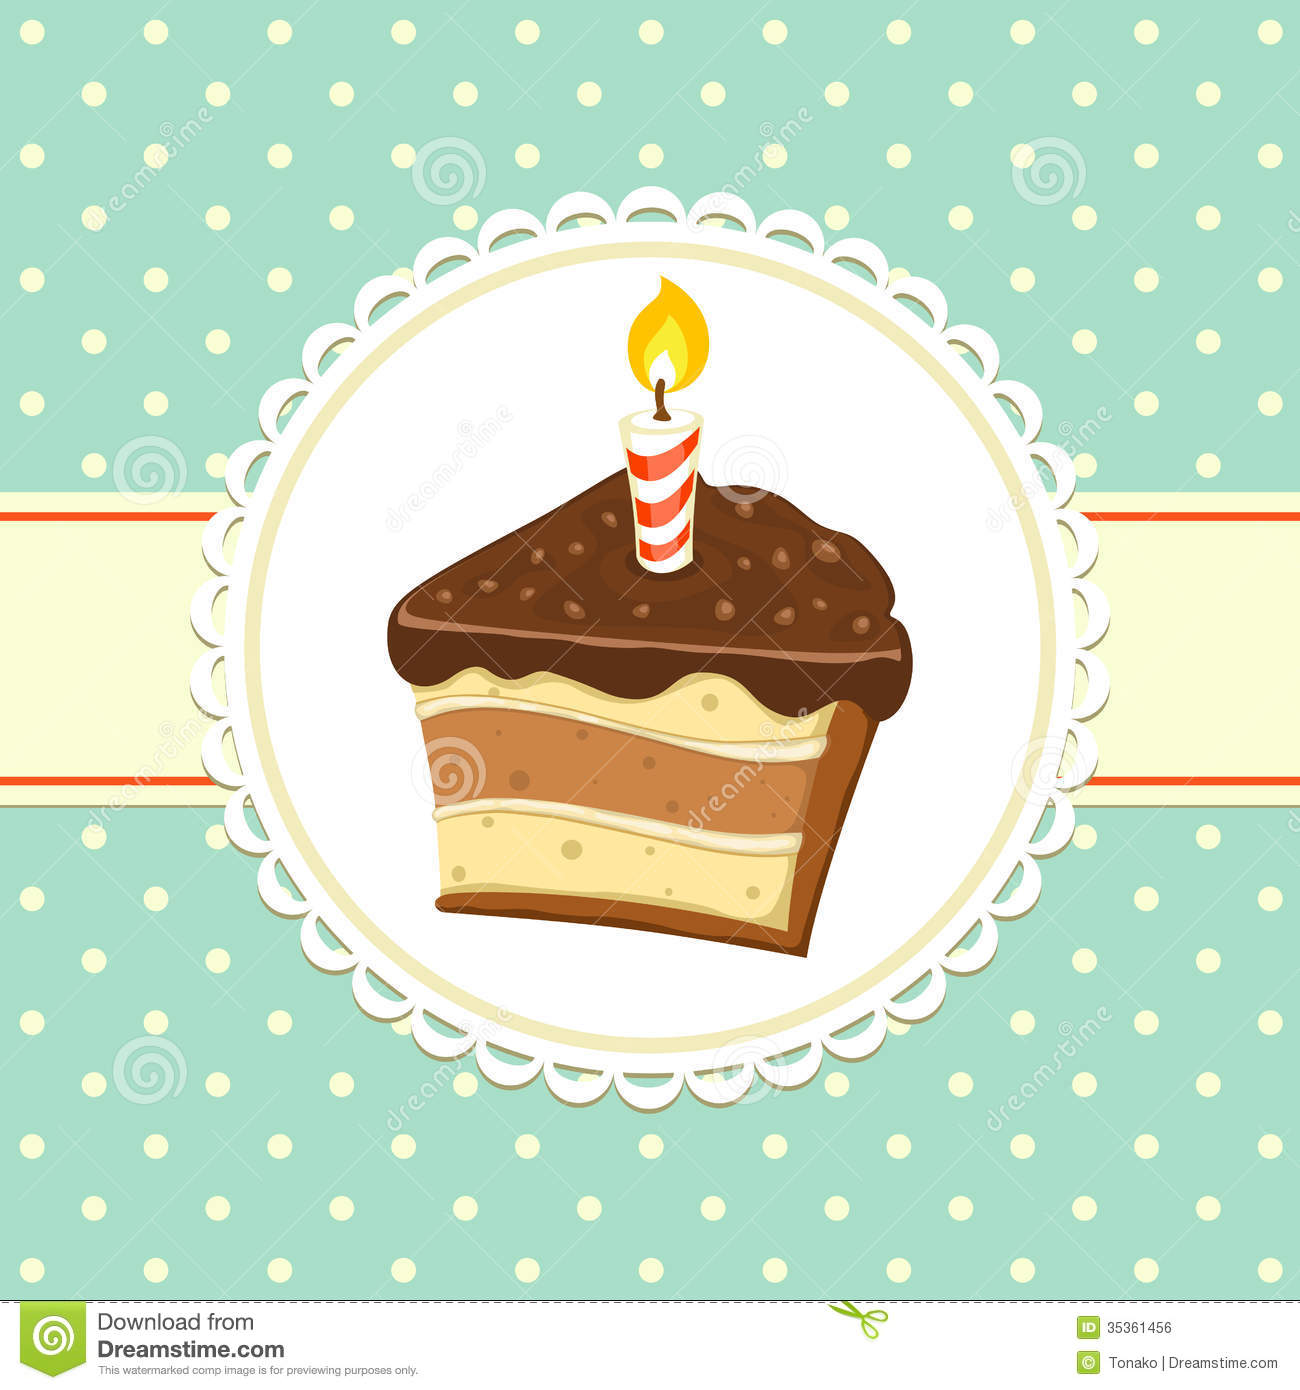 Piece Of Cake Royalty Free Stock Image - Image: 35361456